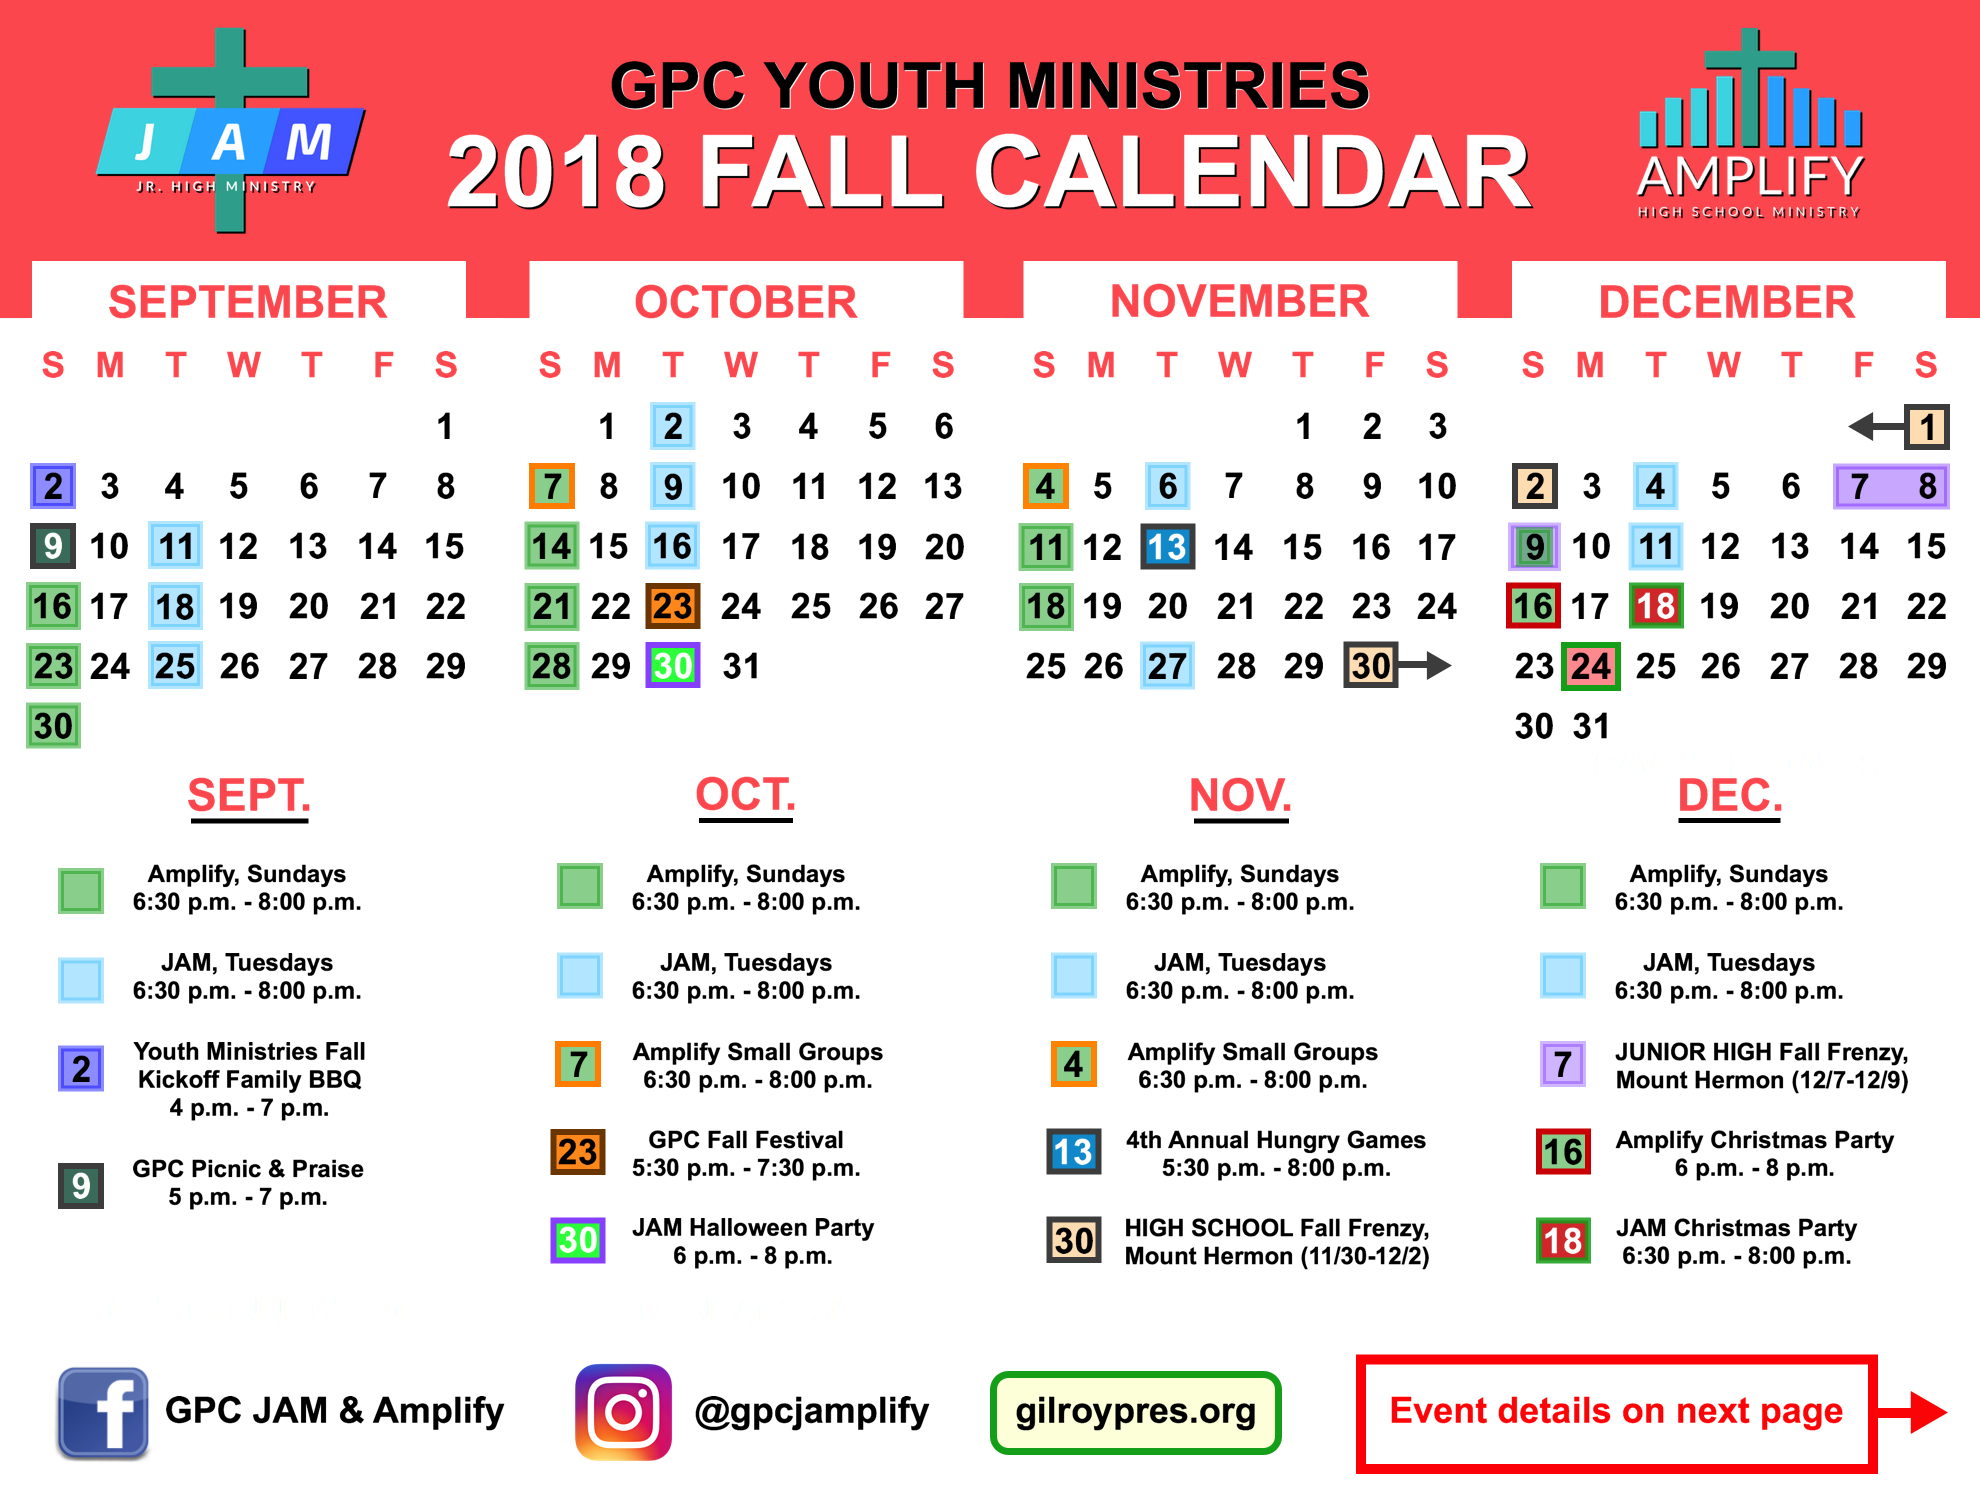 gilroy presbyterian church youth ministries calendar events forms